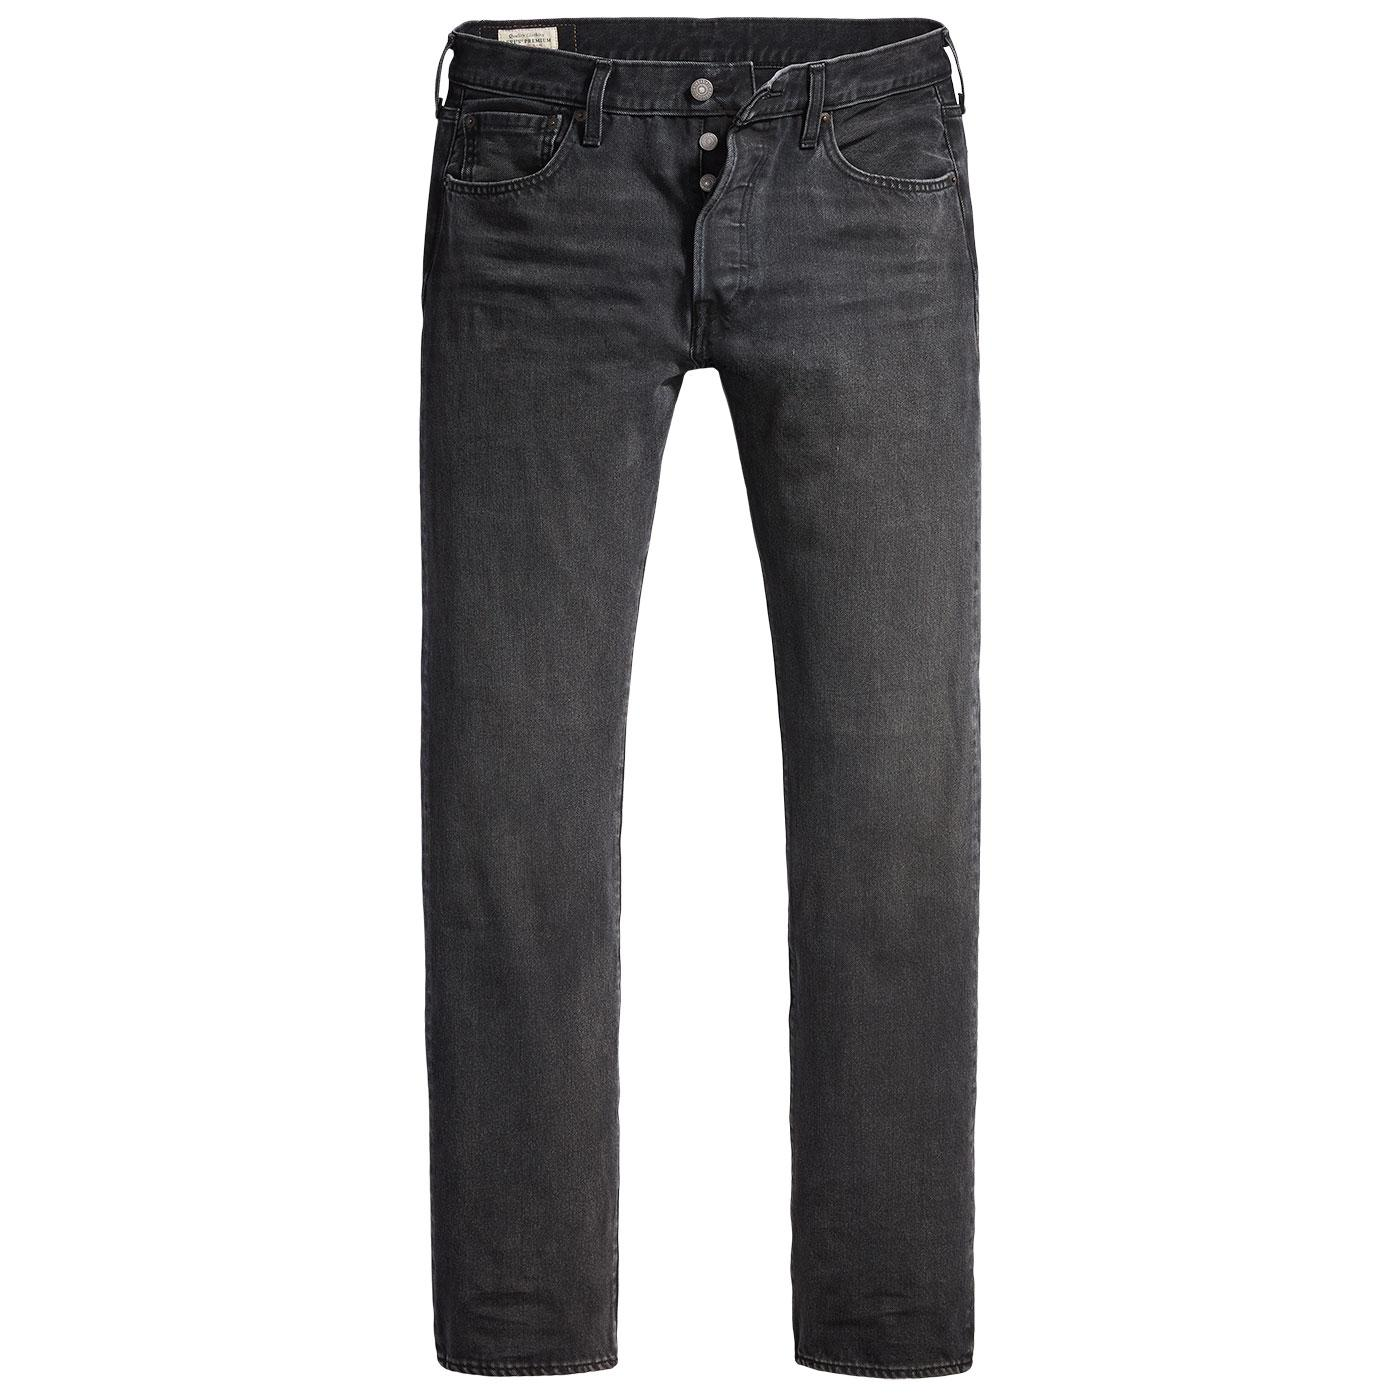 LEVI'S 501 Retro Straight Leg Jeans (Solice Black)